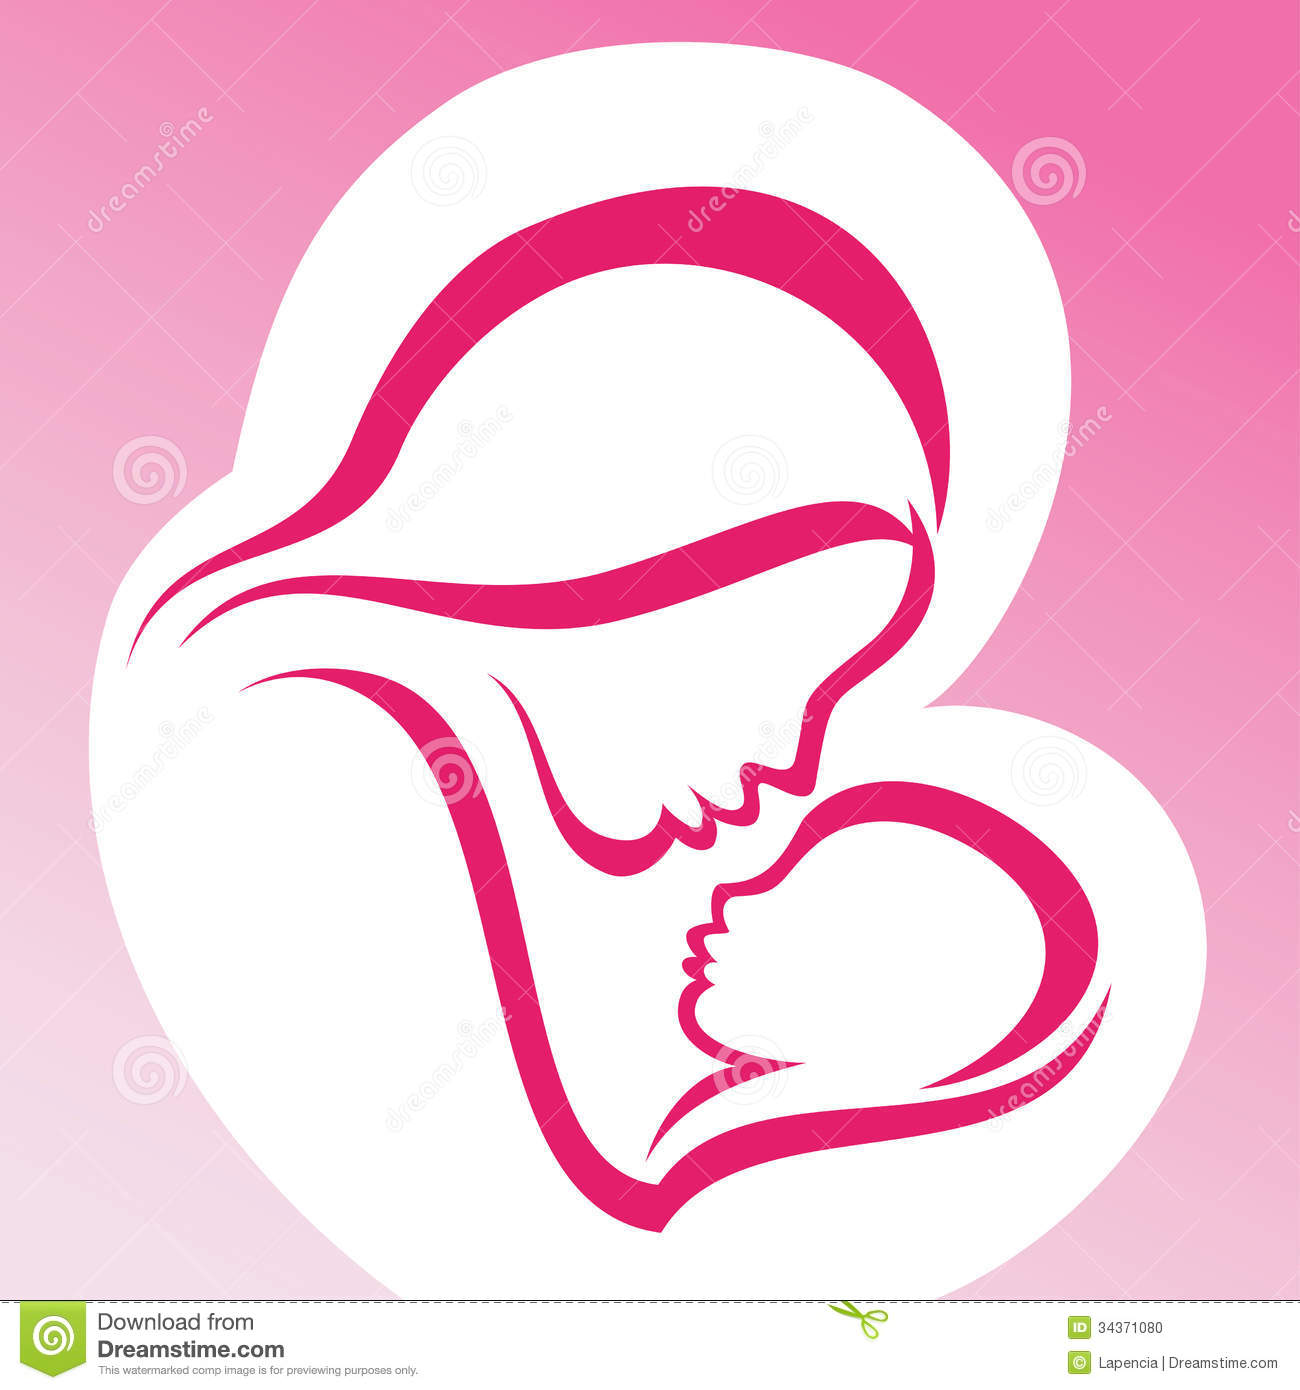 mother and child clipart-mother and child clipart-18